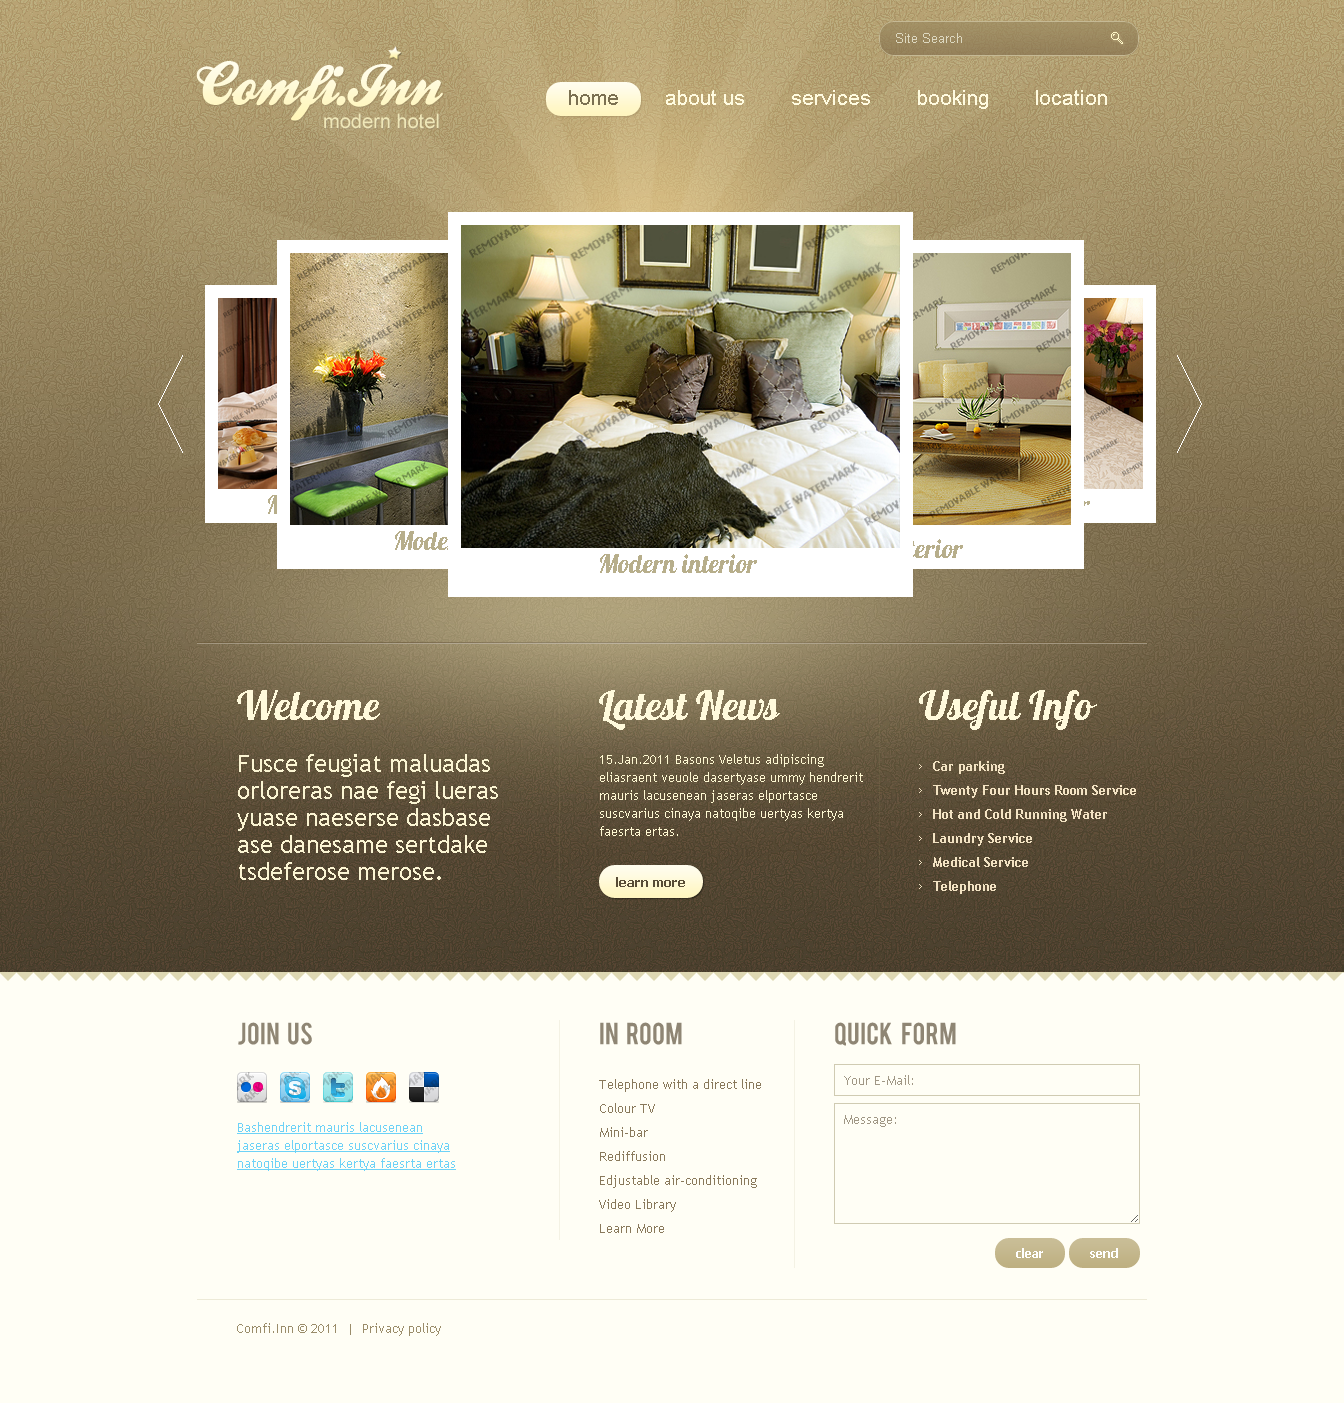 Web Page Design Ideas website design ideas 5 tips for designing a great website Motel Accommodation Hotel Web Design Idea 05png 1344 Web Page Design Ideas